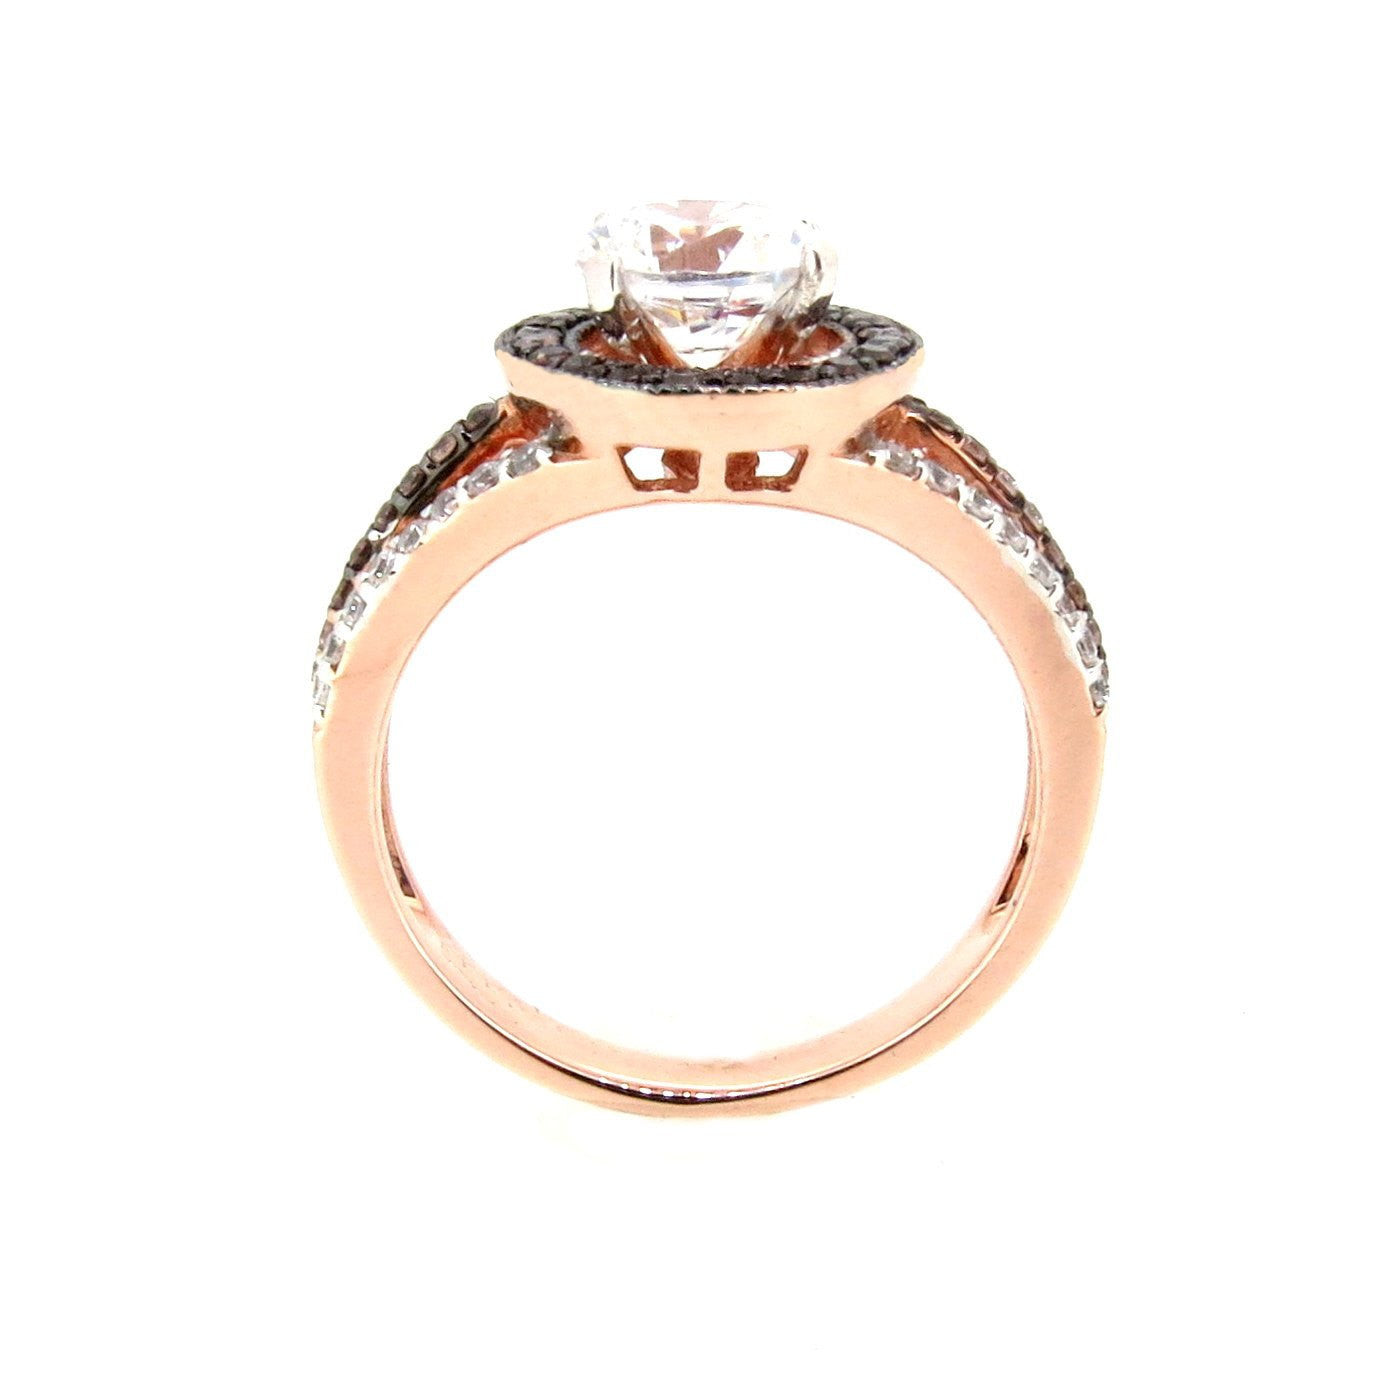 1 Carat Forever Brilliant Moissanite Engagement Ring, Floating Halo Rose Gold, White & Chocolate Color Brown Diamonds, Anniversary Ring - FB94657